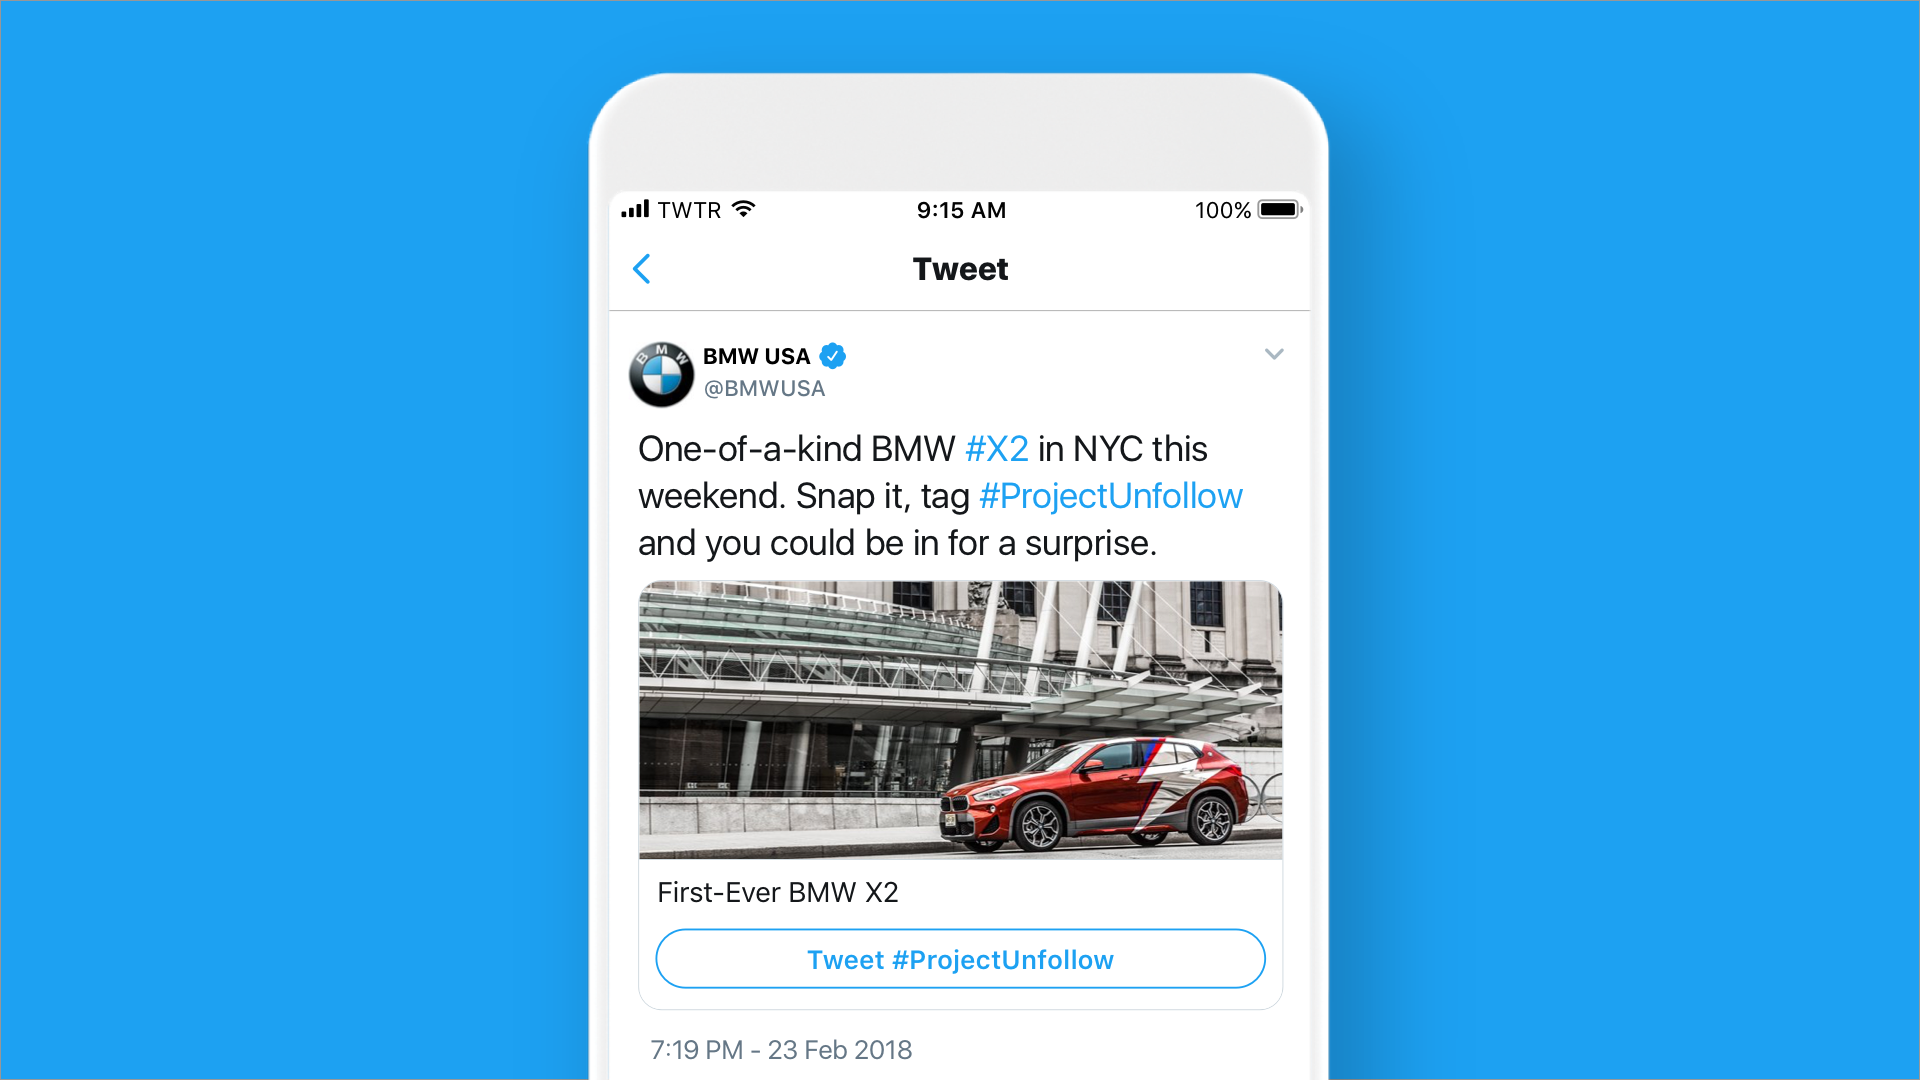 Twitter Conversational Card - BMW X2 in NYC